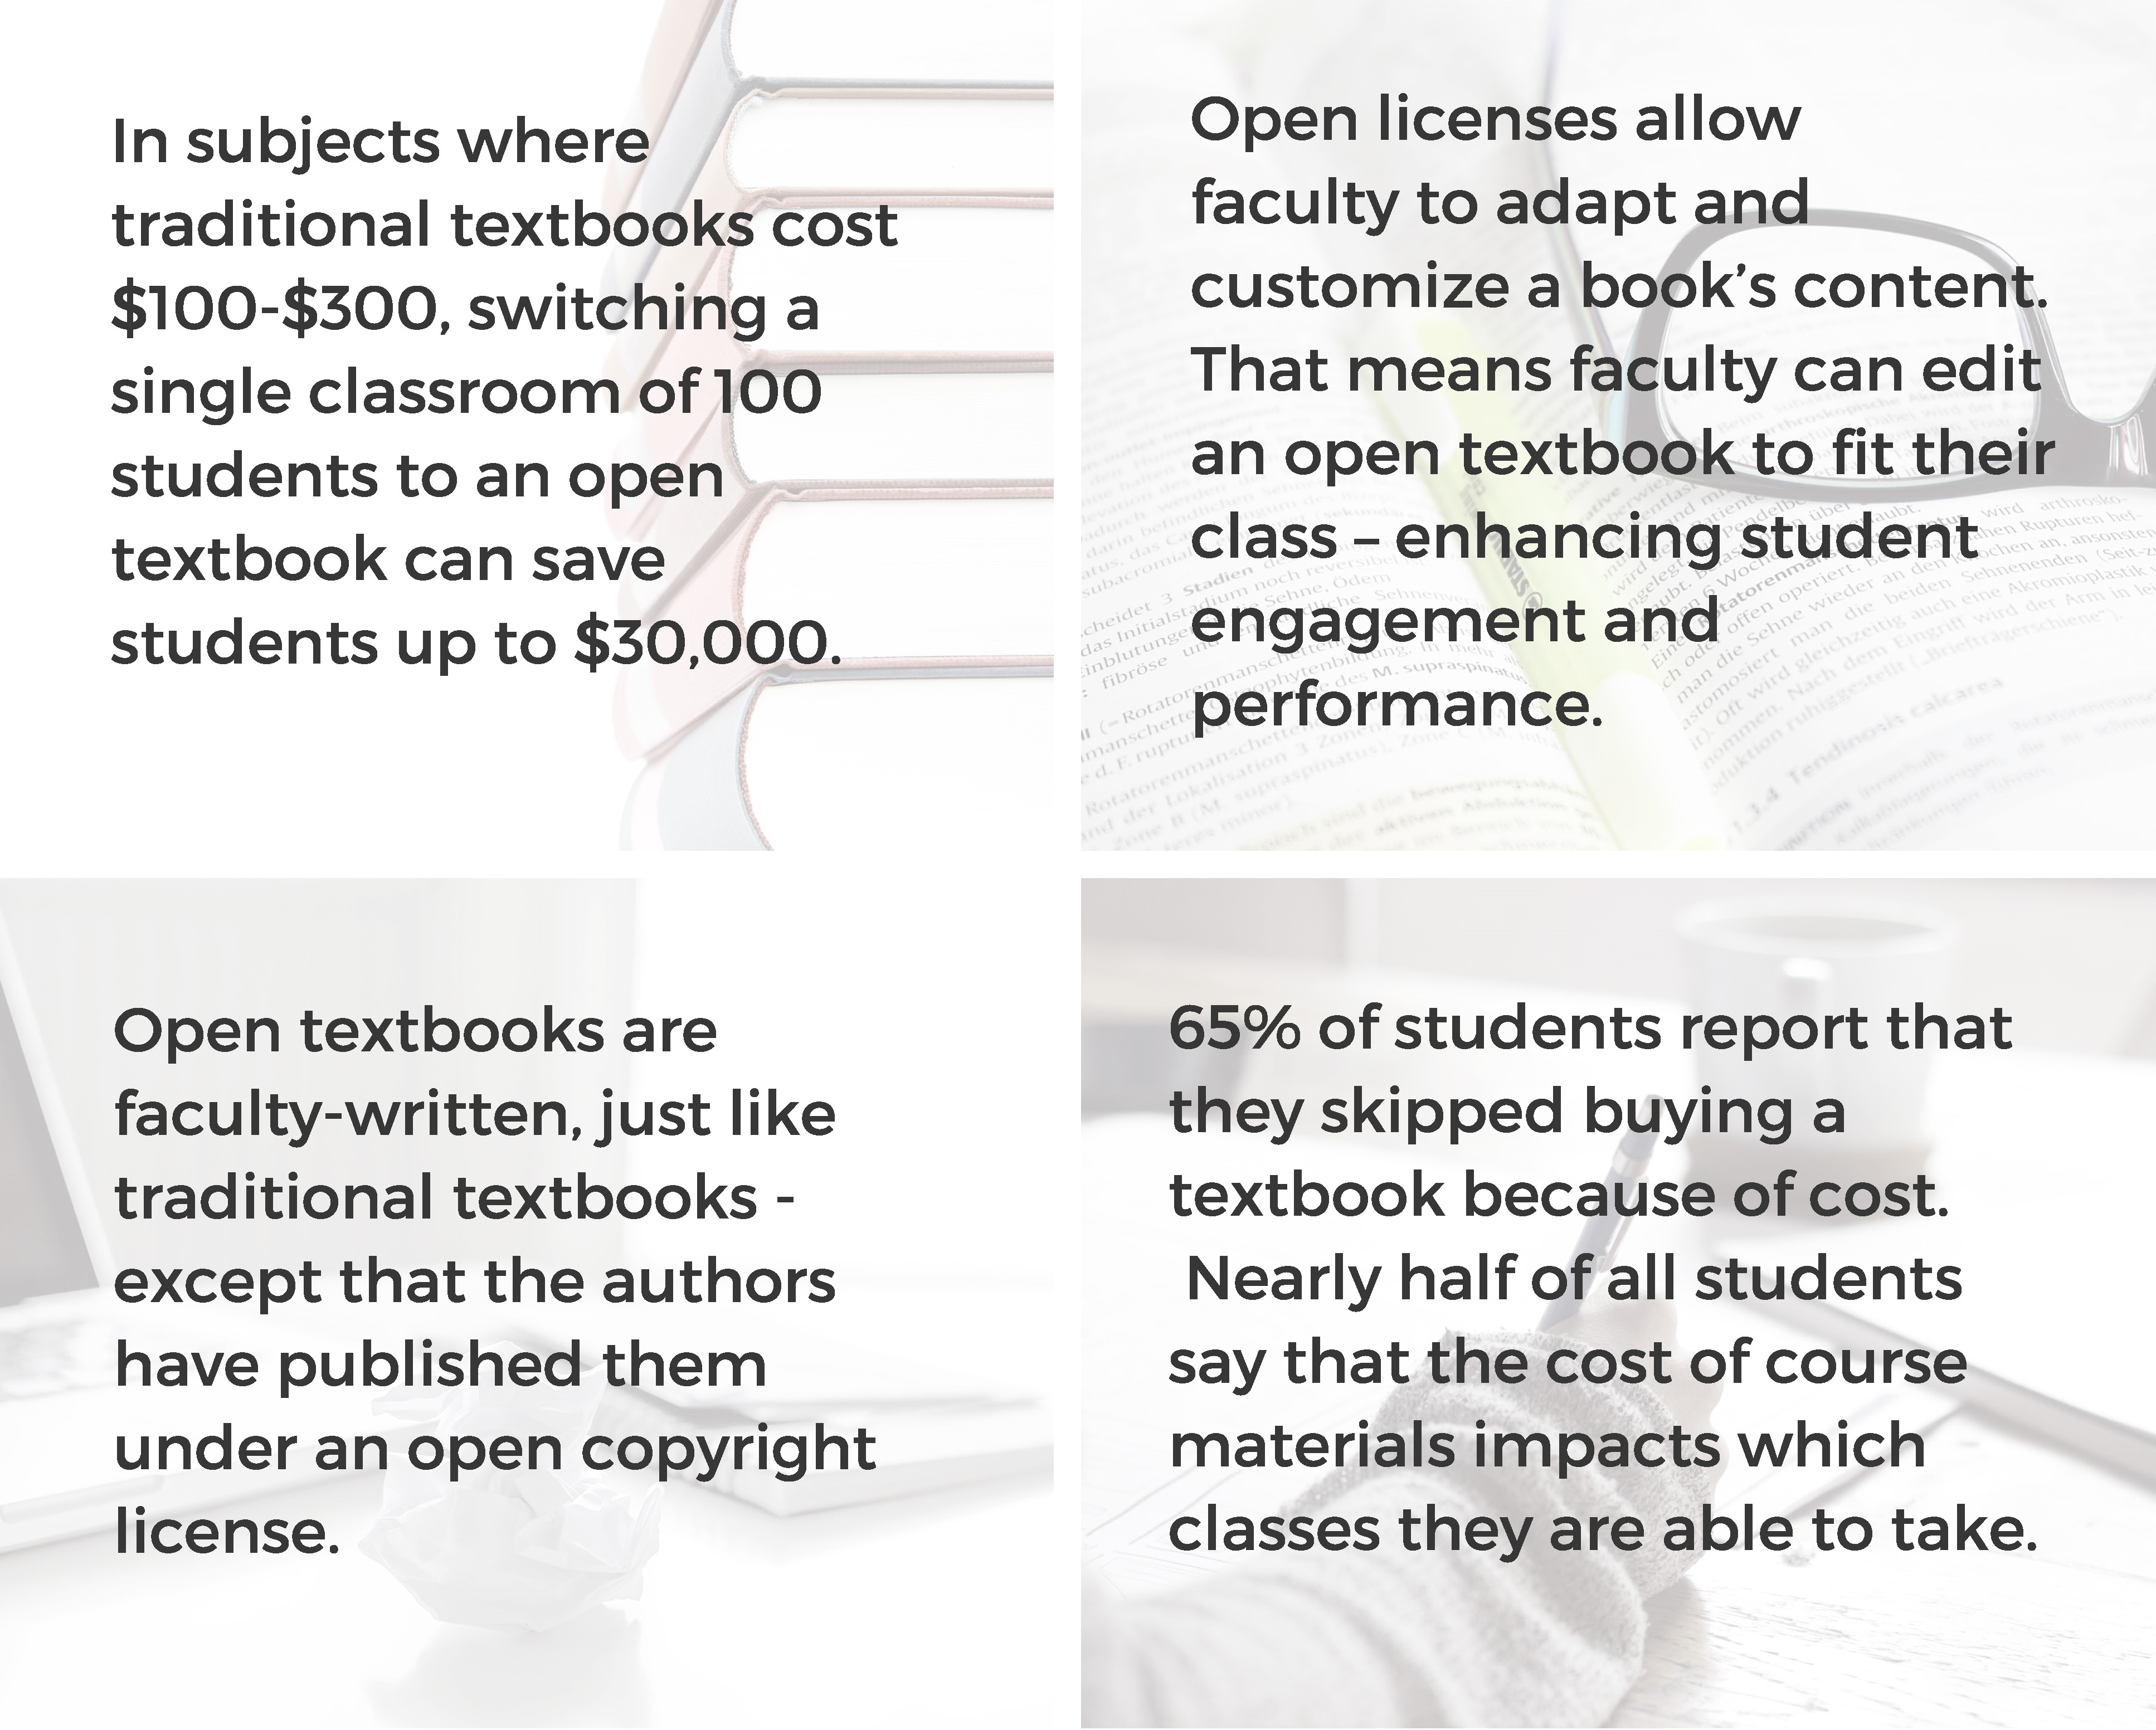 In subjects where traditional textbooks cost $100-$300, switching a single classroom of 100 students to an open textbook can save students up to $30,000.     Open licenses allow faculty to adapt and customize a book's content. That means faculty can edit an open textbook to fit their class – enhancing student engagement and performance.     Open textbooks are faculty-written, just like traditional textbooks—except that the authors have published them under an open copyright license.     65% of students report that they skipped buying a textbook because of cost. Nearly half of all students say that the cost of course materials impacts which classes they are able to take.